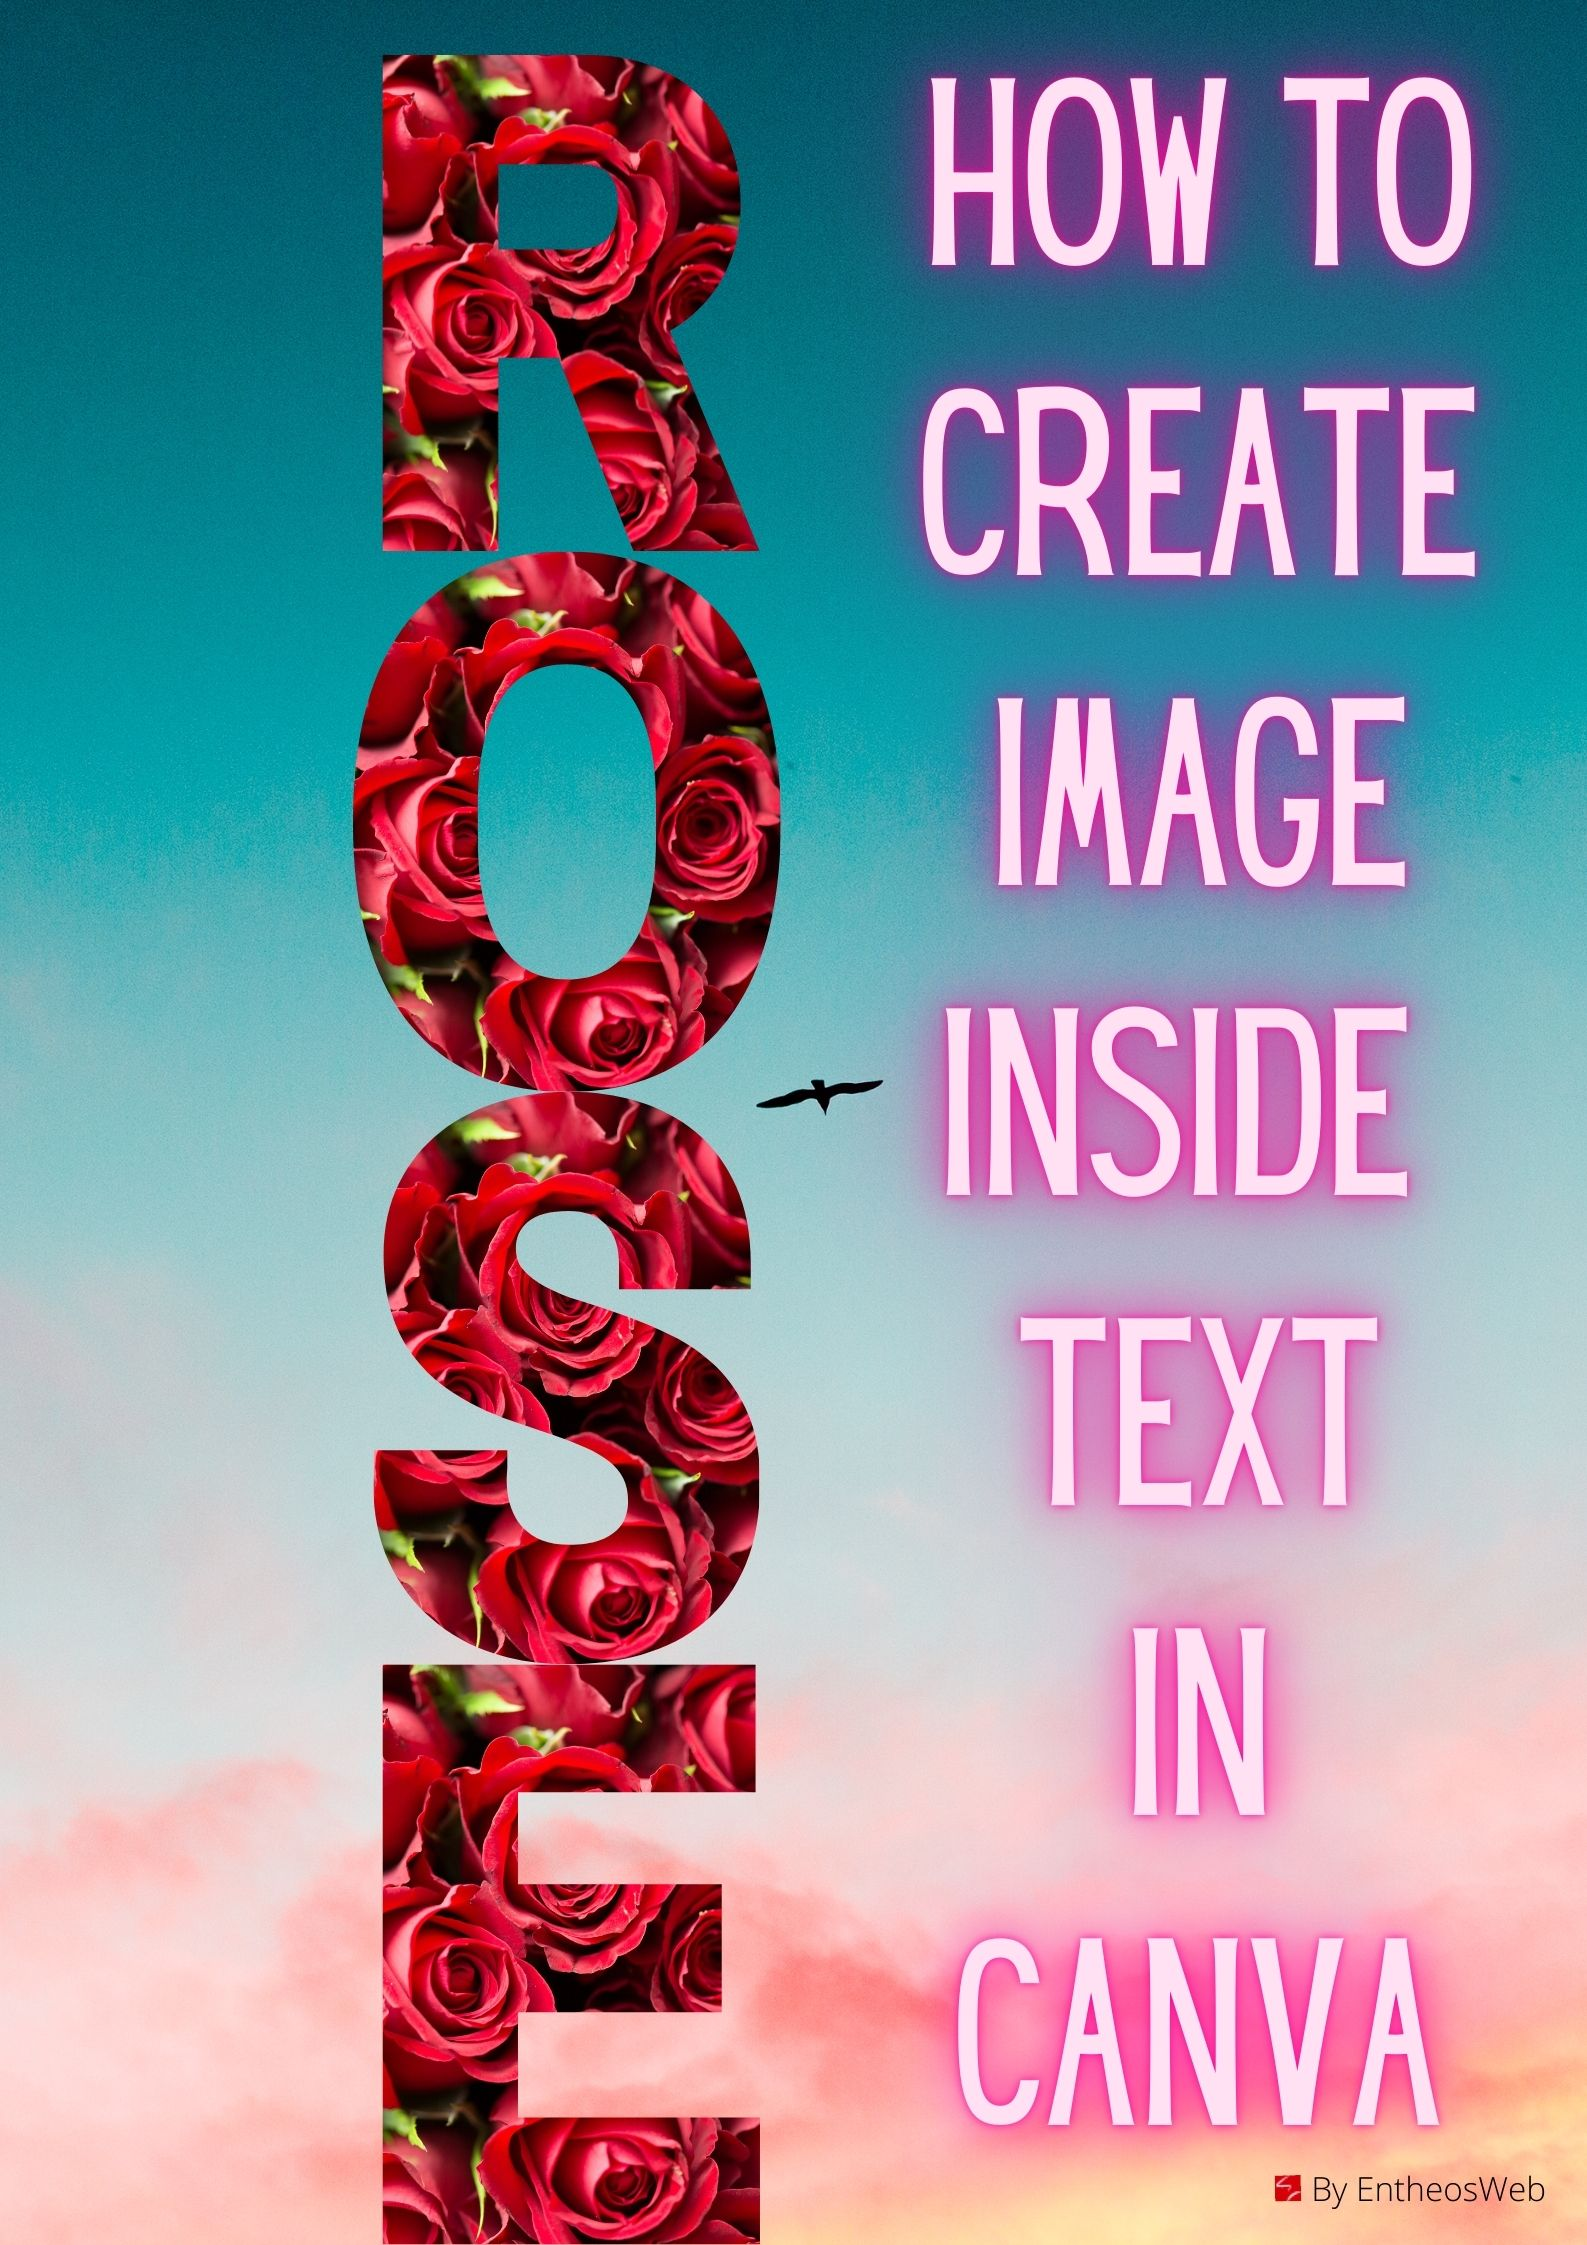 How to Easily Create Image Inside Text In Canva